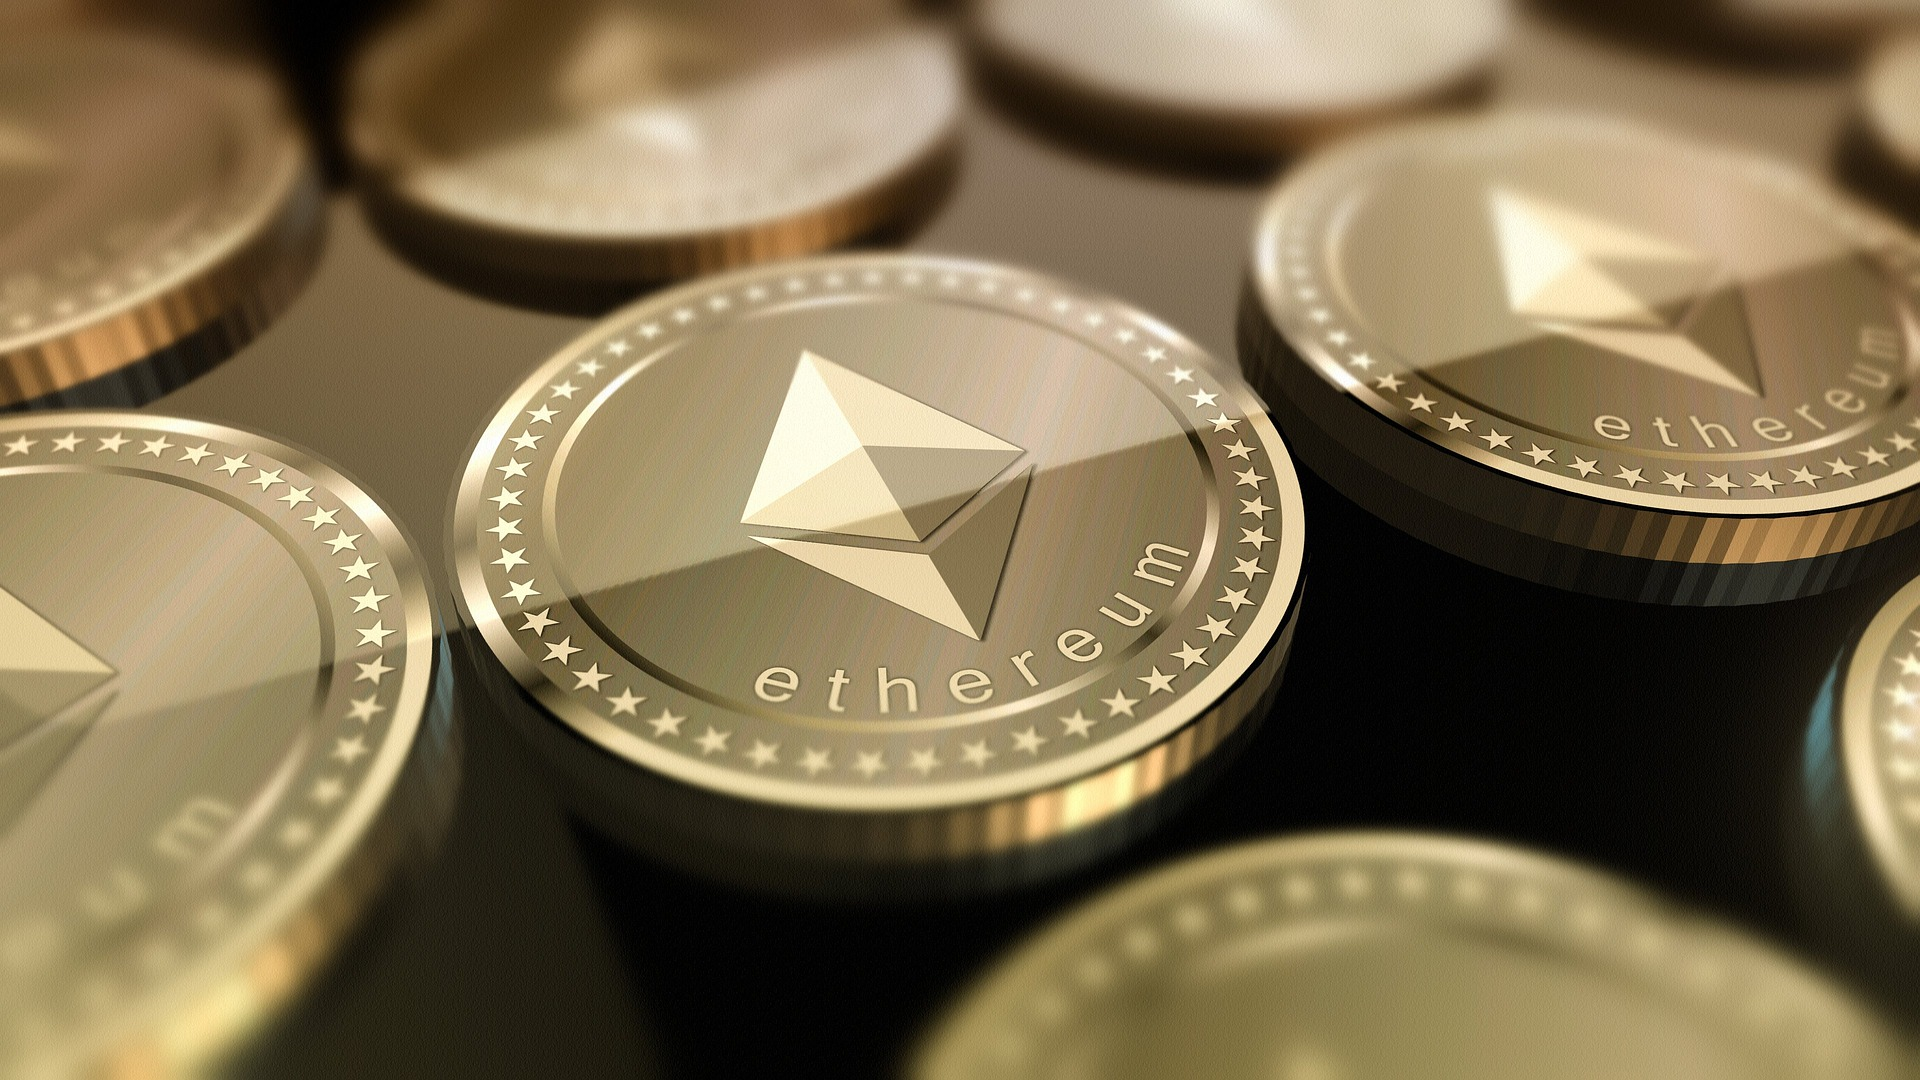 Cardano and Stellar Increase In Value While Bitcoin And Ethereum Take The Back Row